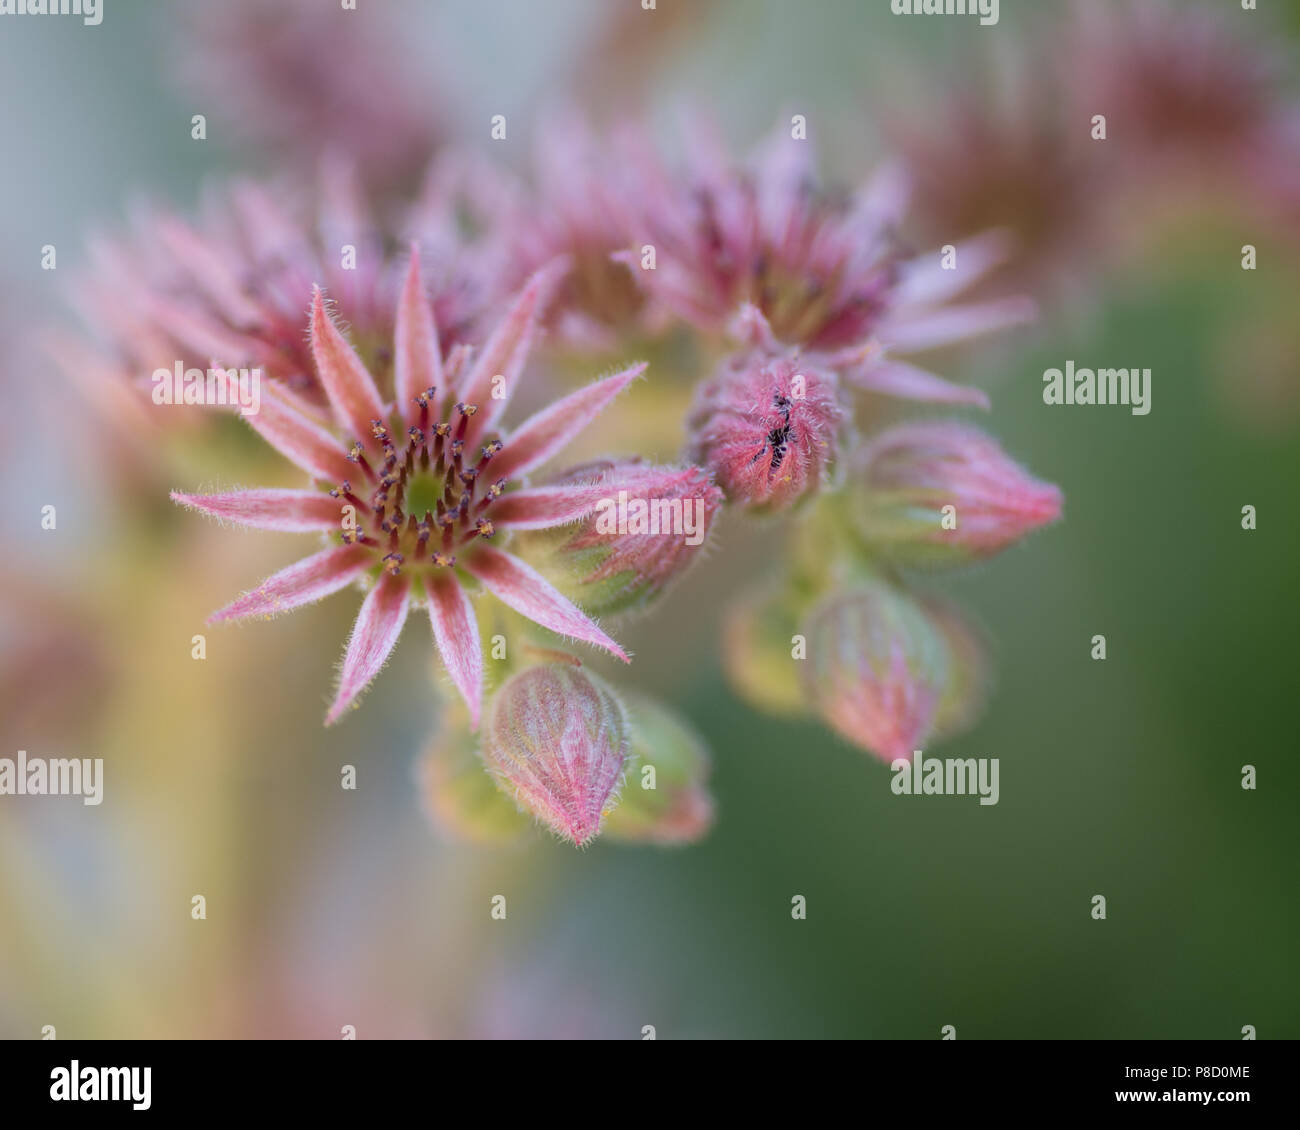 Chicks and hens flowering in the summer. New Jersey is the garden state of the United states. Flowers of any kind are nature's way to goodness. - Stock Image